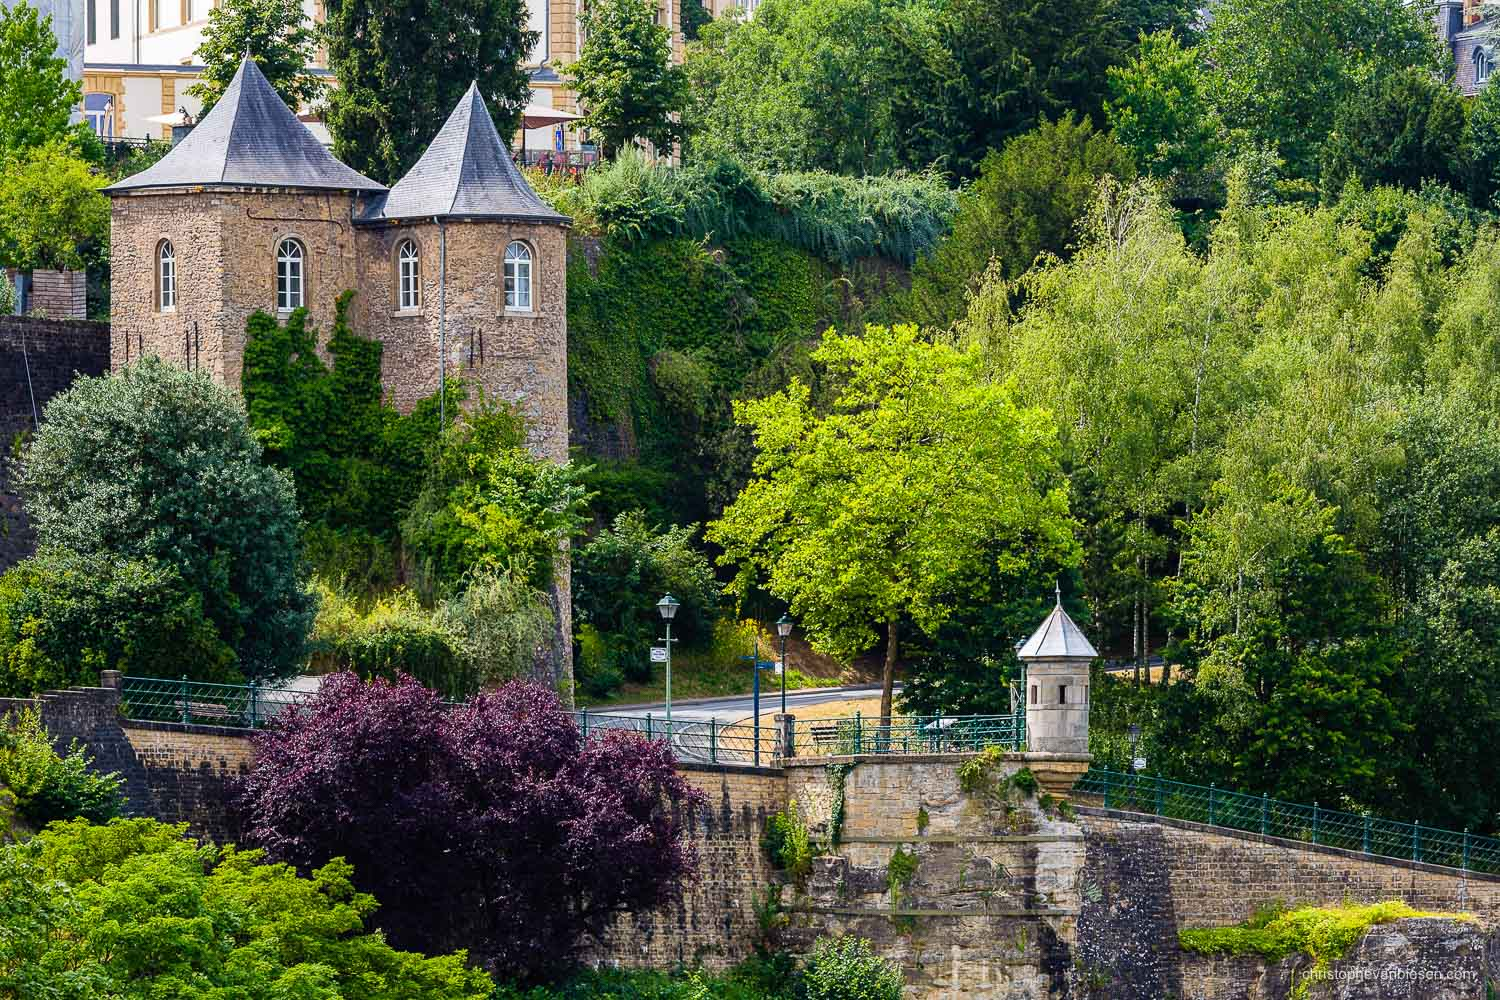 Top 25 photos made in Luxembourg - Luxembourg's old towers